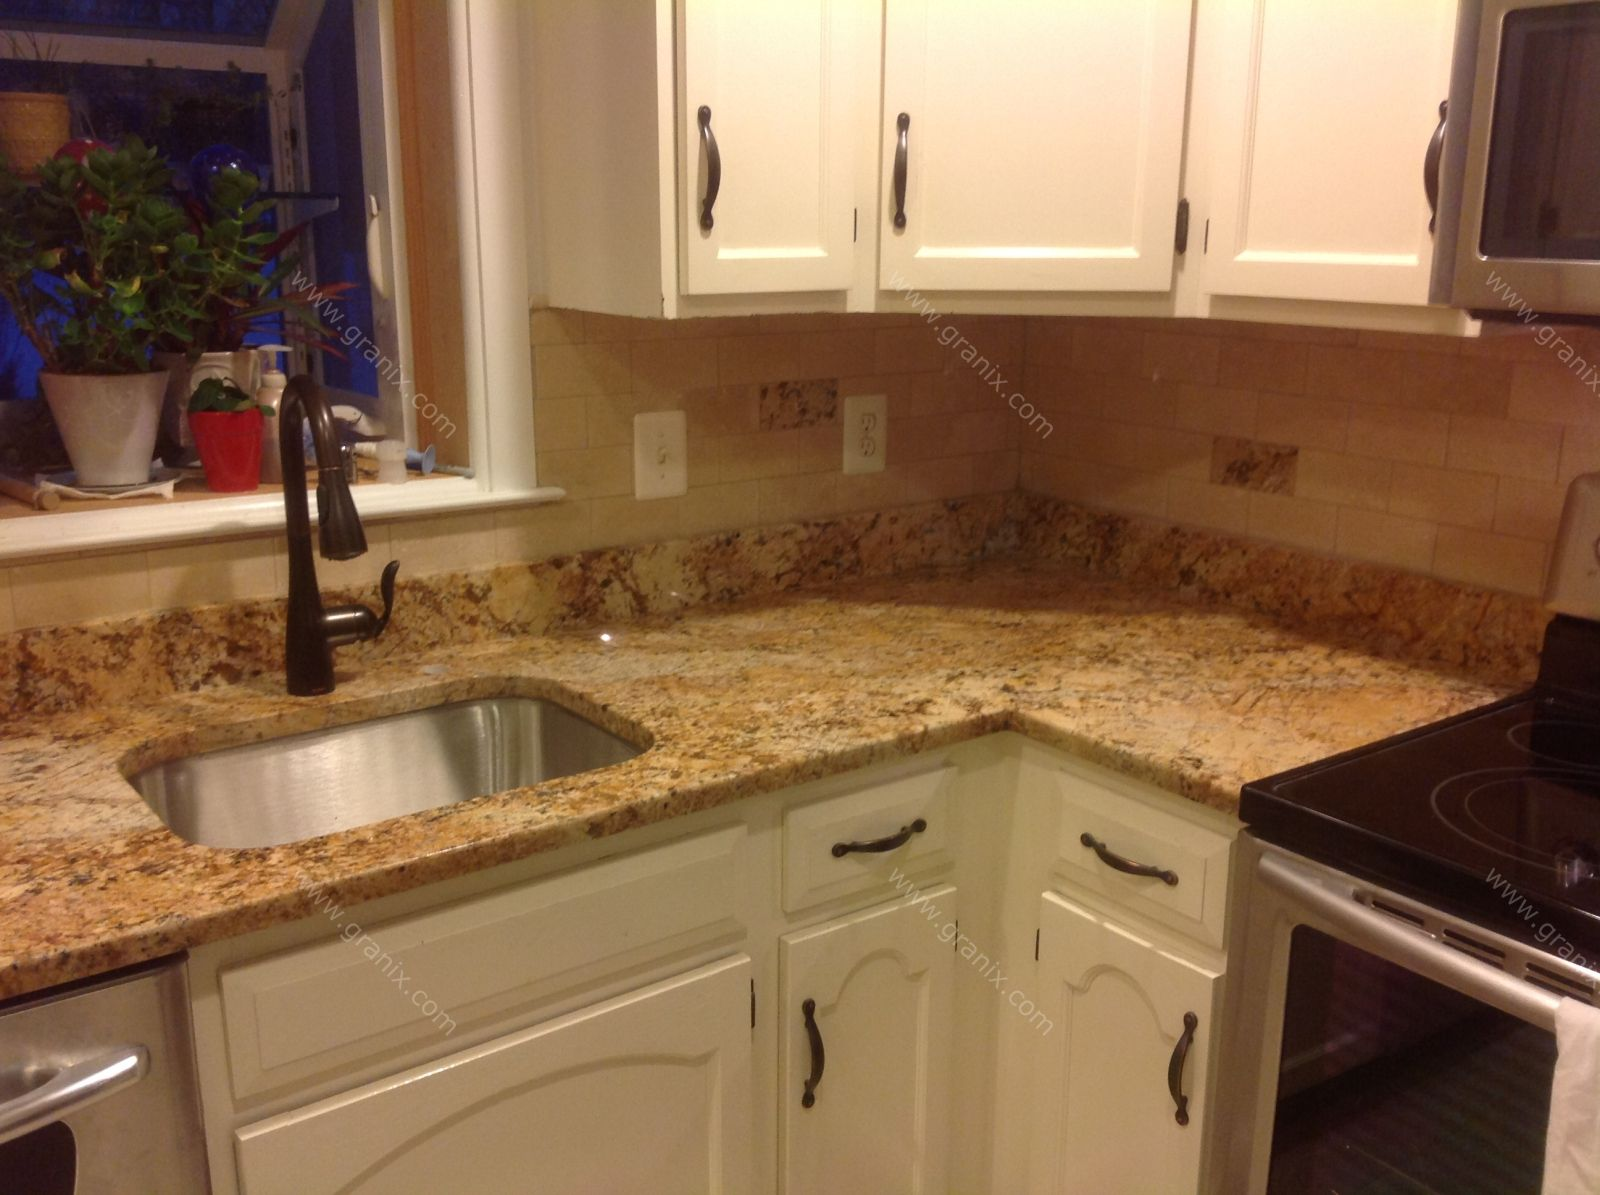 Mac S. - (Before & After) Solarius Granite Countertop & Backsplash ...